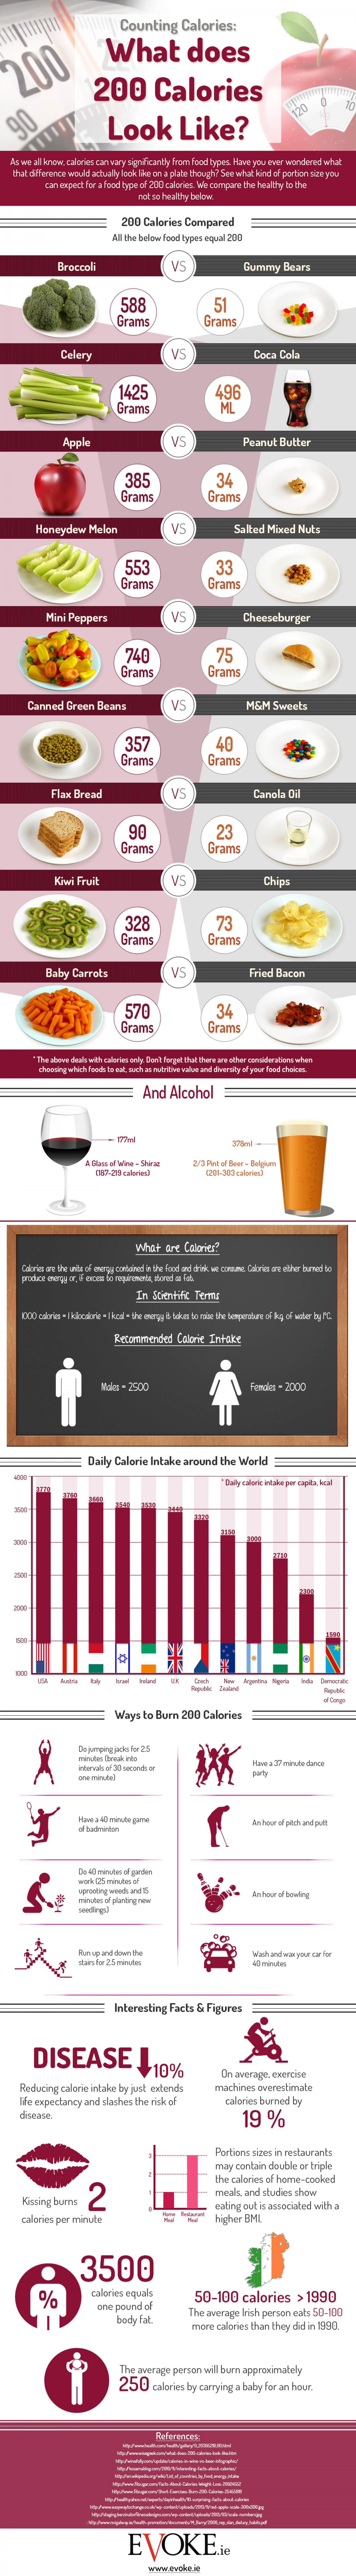 What Does 200 Calories Look Like? Infographic